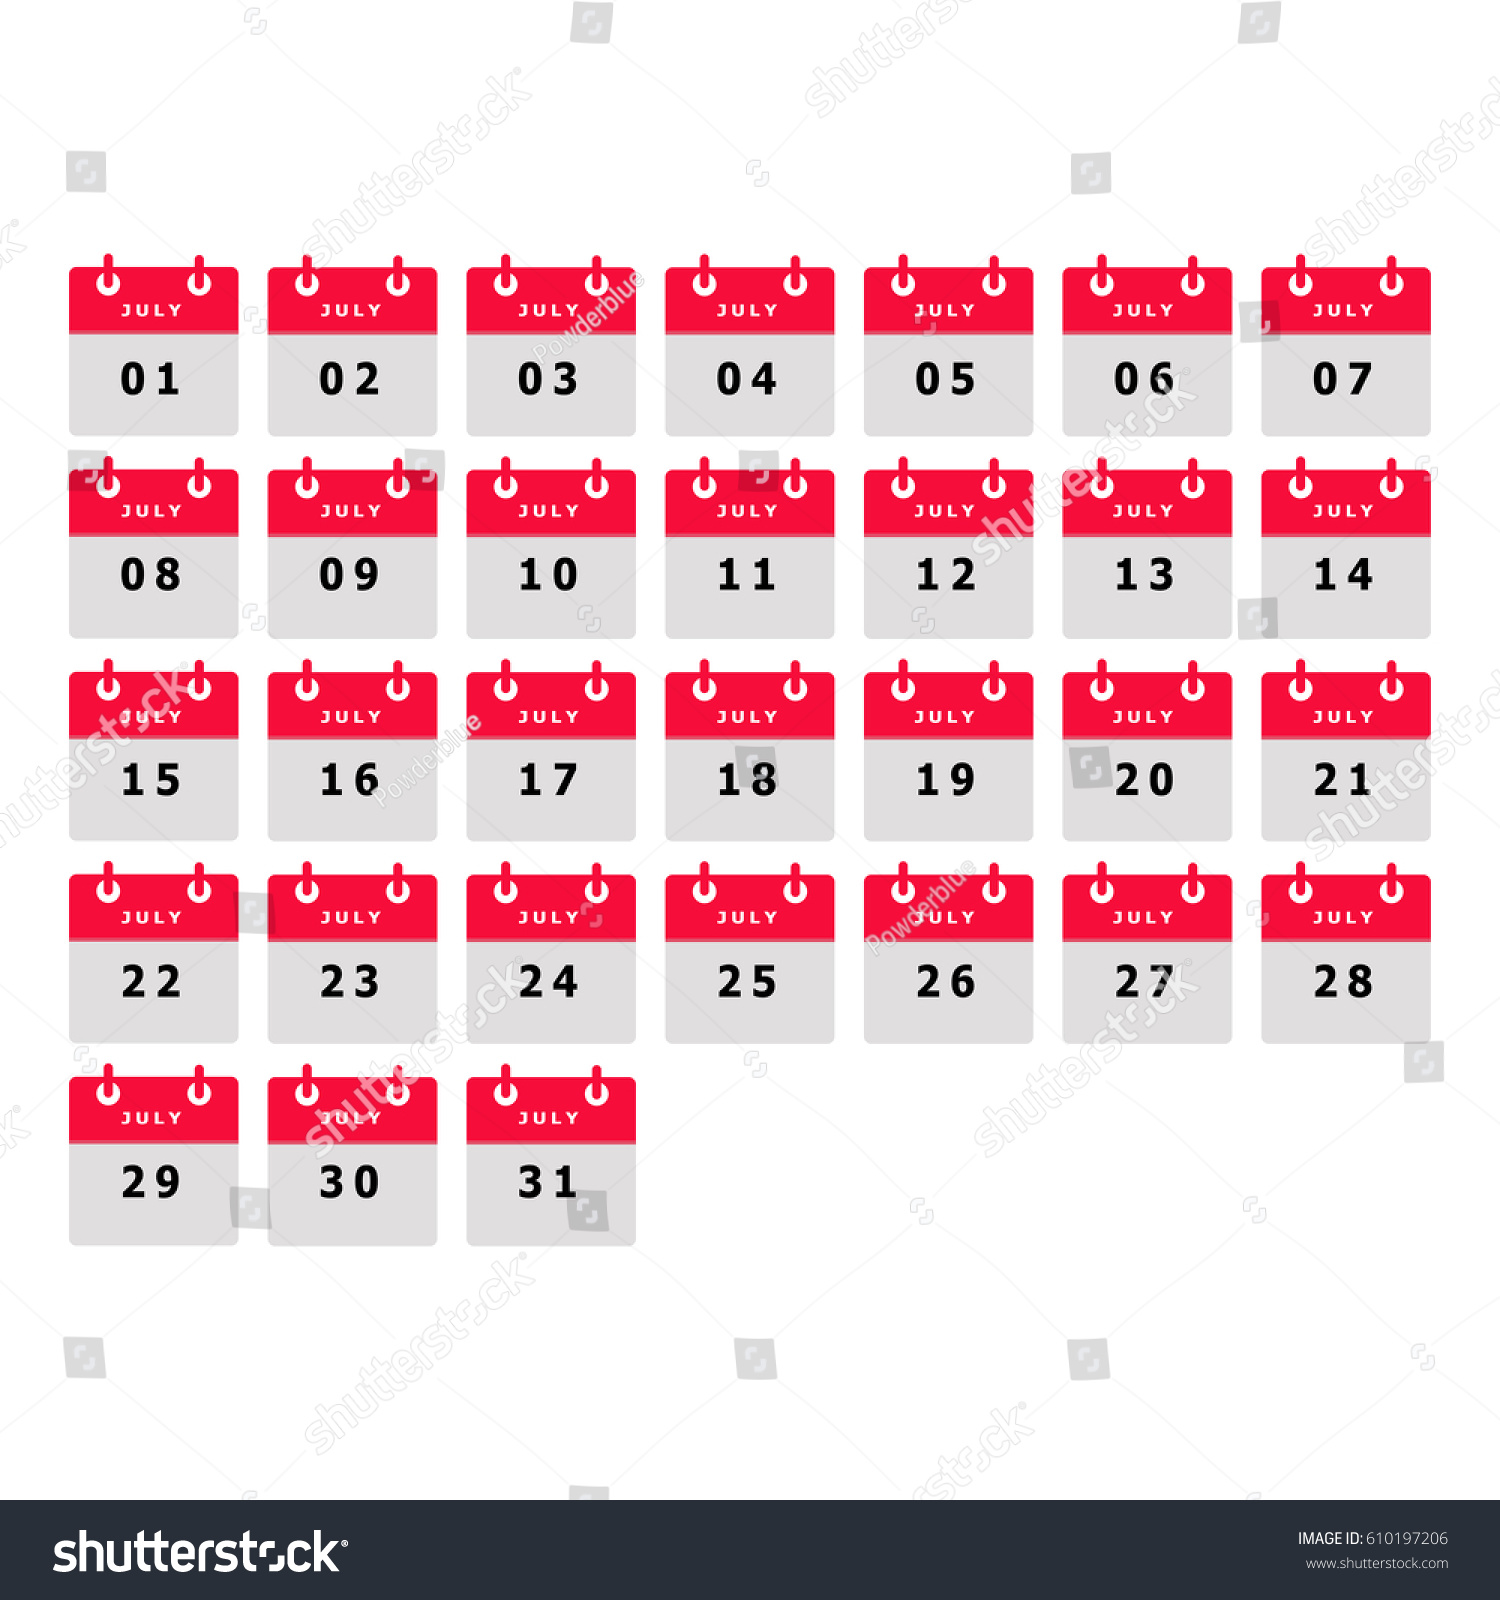 Calendar Number July Month Template Illustrator Stock Vector ...